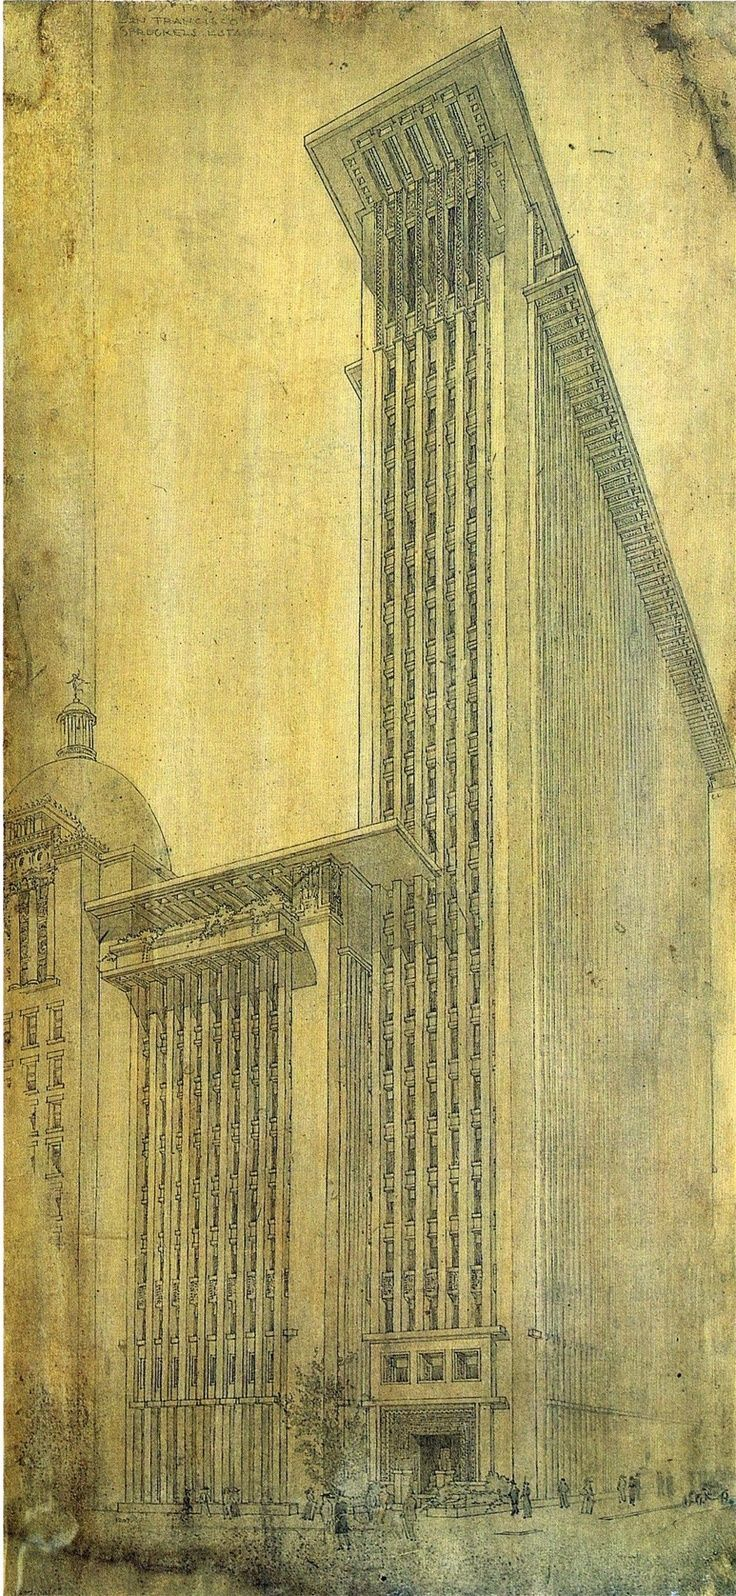 Frank Lloyd Wright design for an office tower for the 'San Francisco Call' press, 1912: